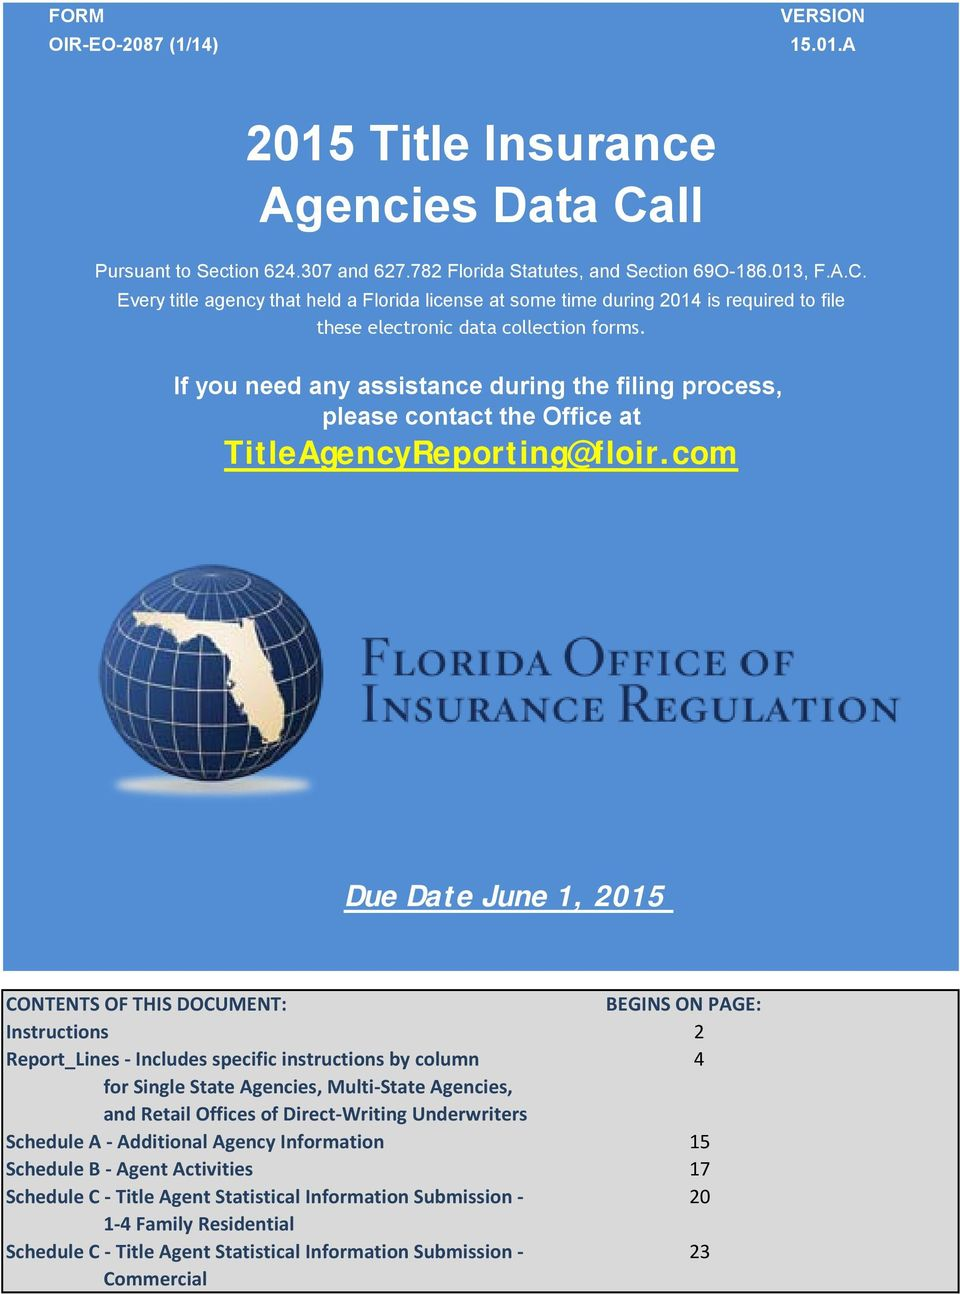 Every title agency that held a Florida license at some time during 2014 is required to file these electronic data collection forms.